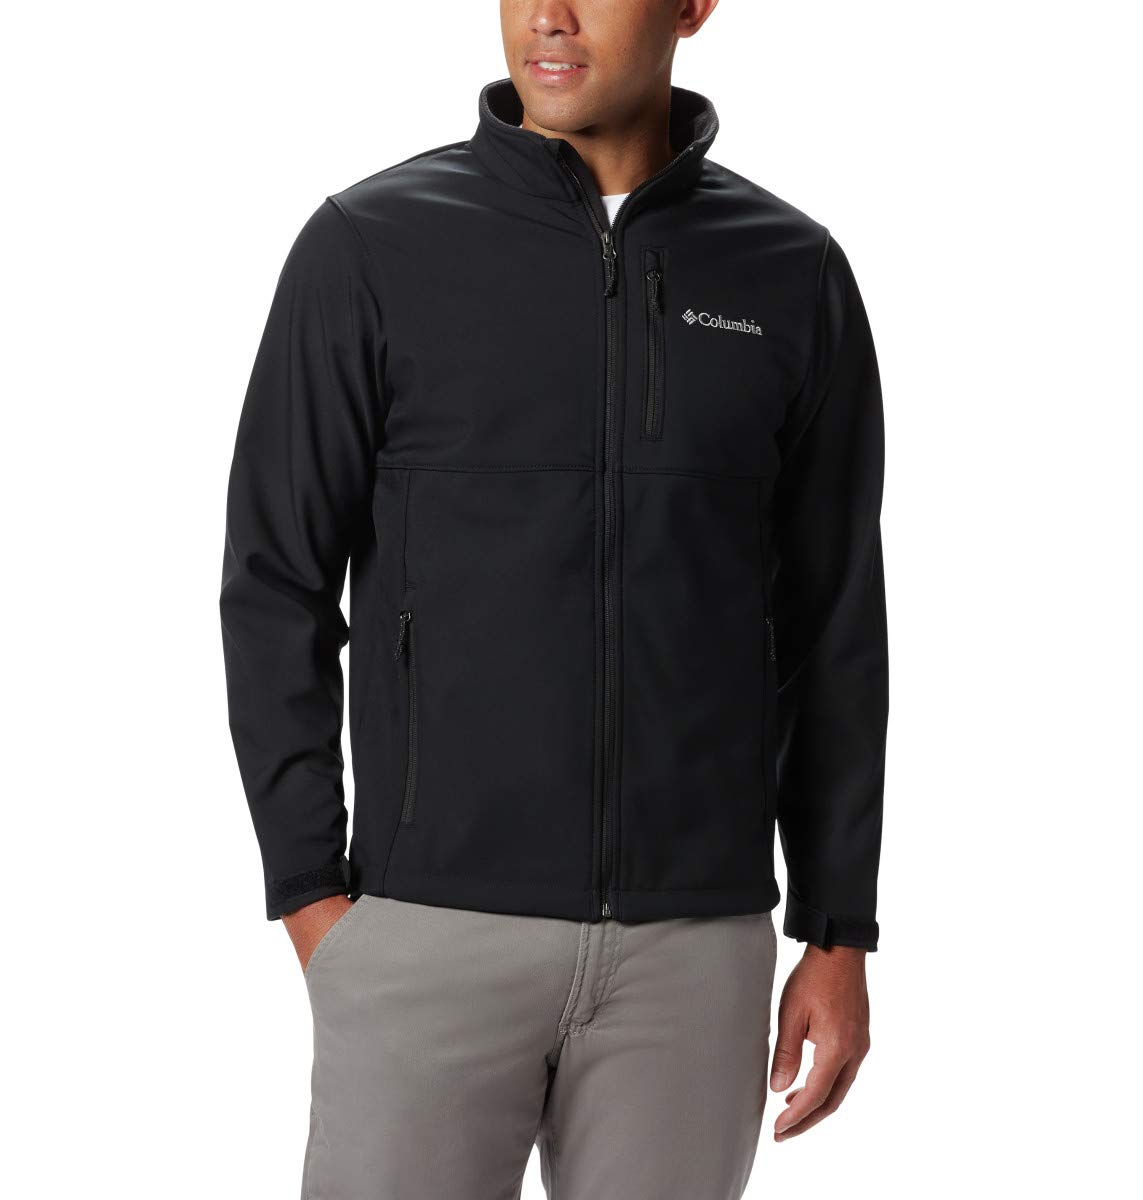 Columbia Men's Ascender Softshell Jacket, Water & Wind Resistant by Columbia